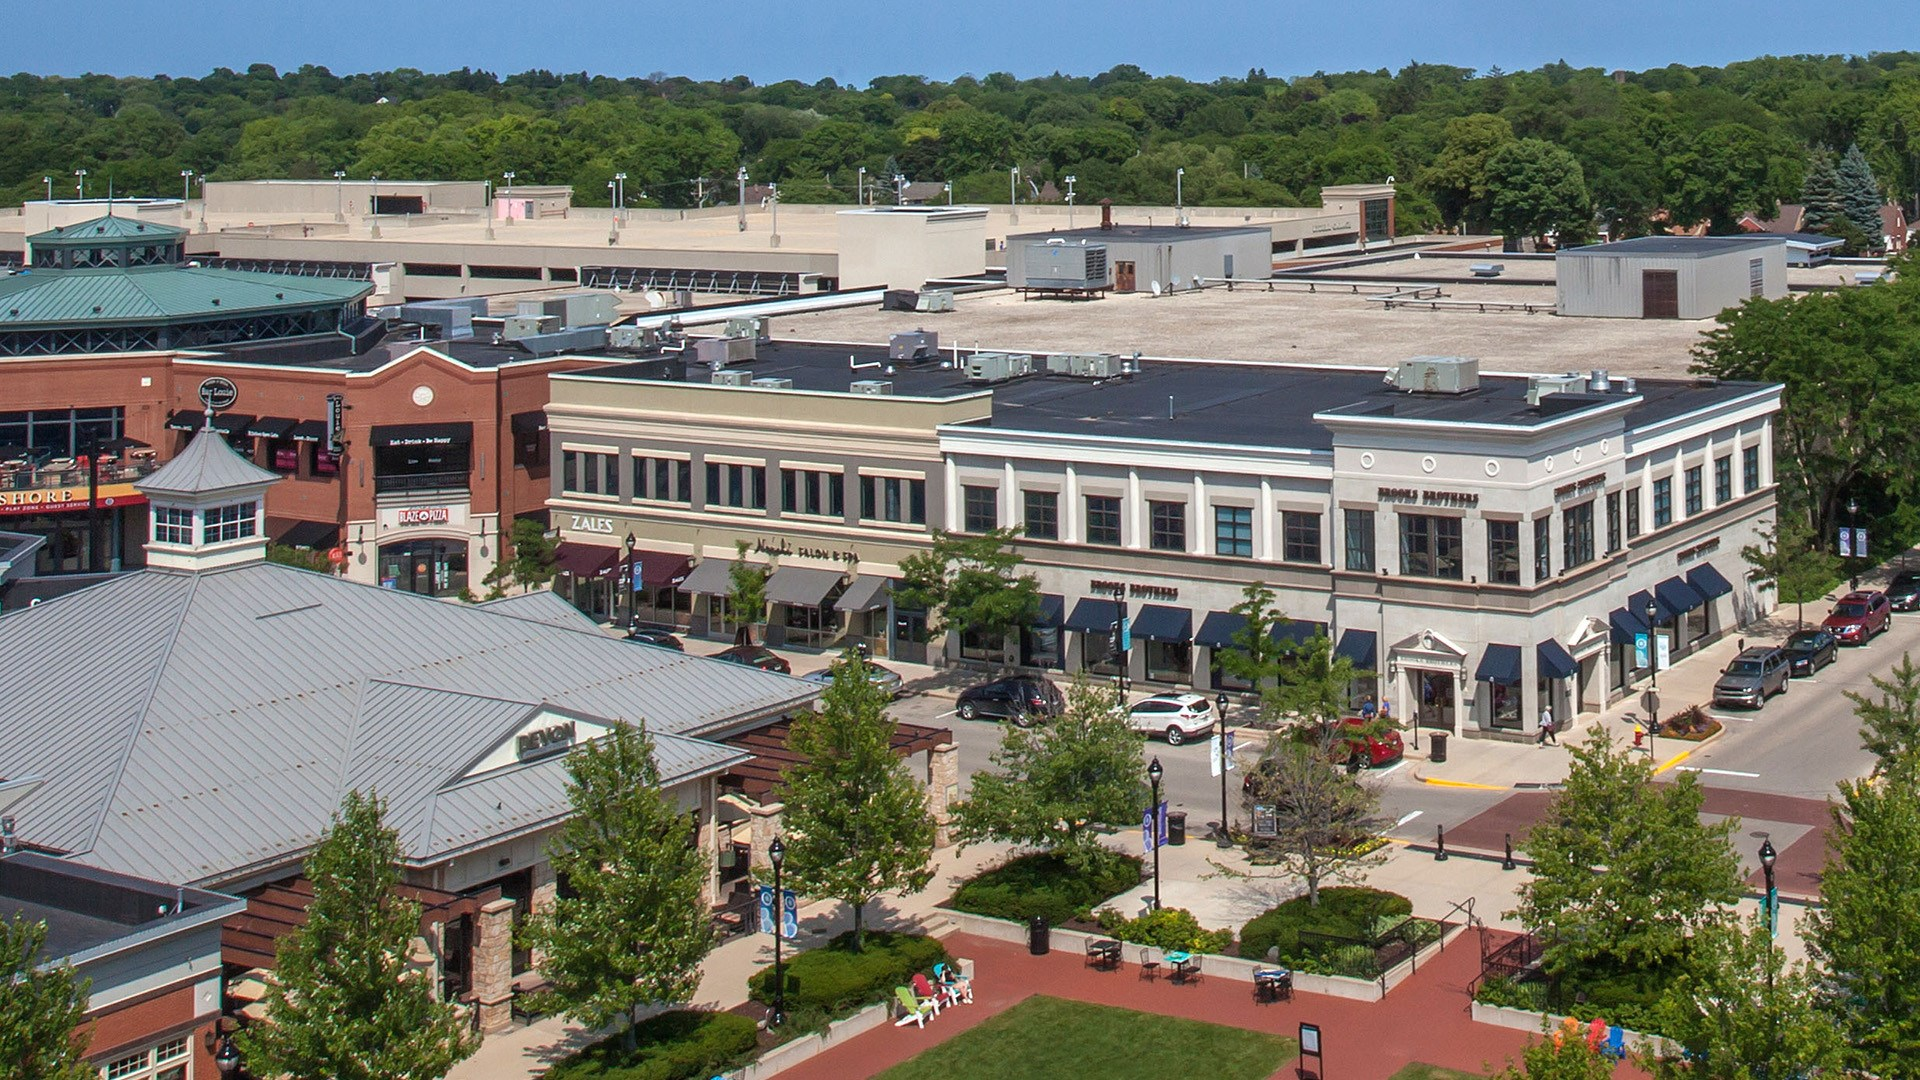 Shop, Dine & Play at Bayshore Town Center!